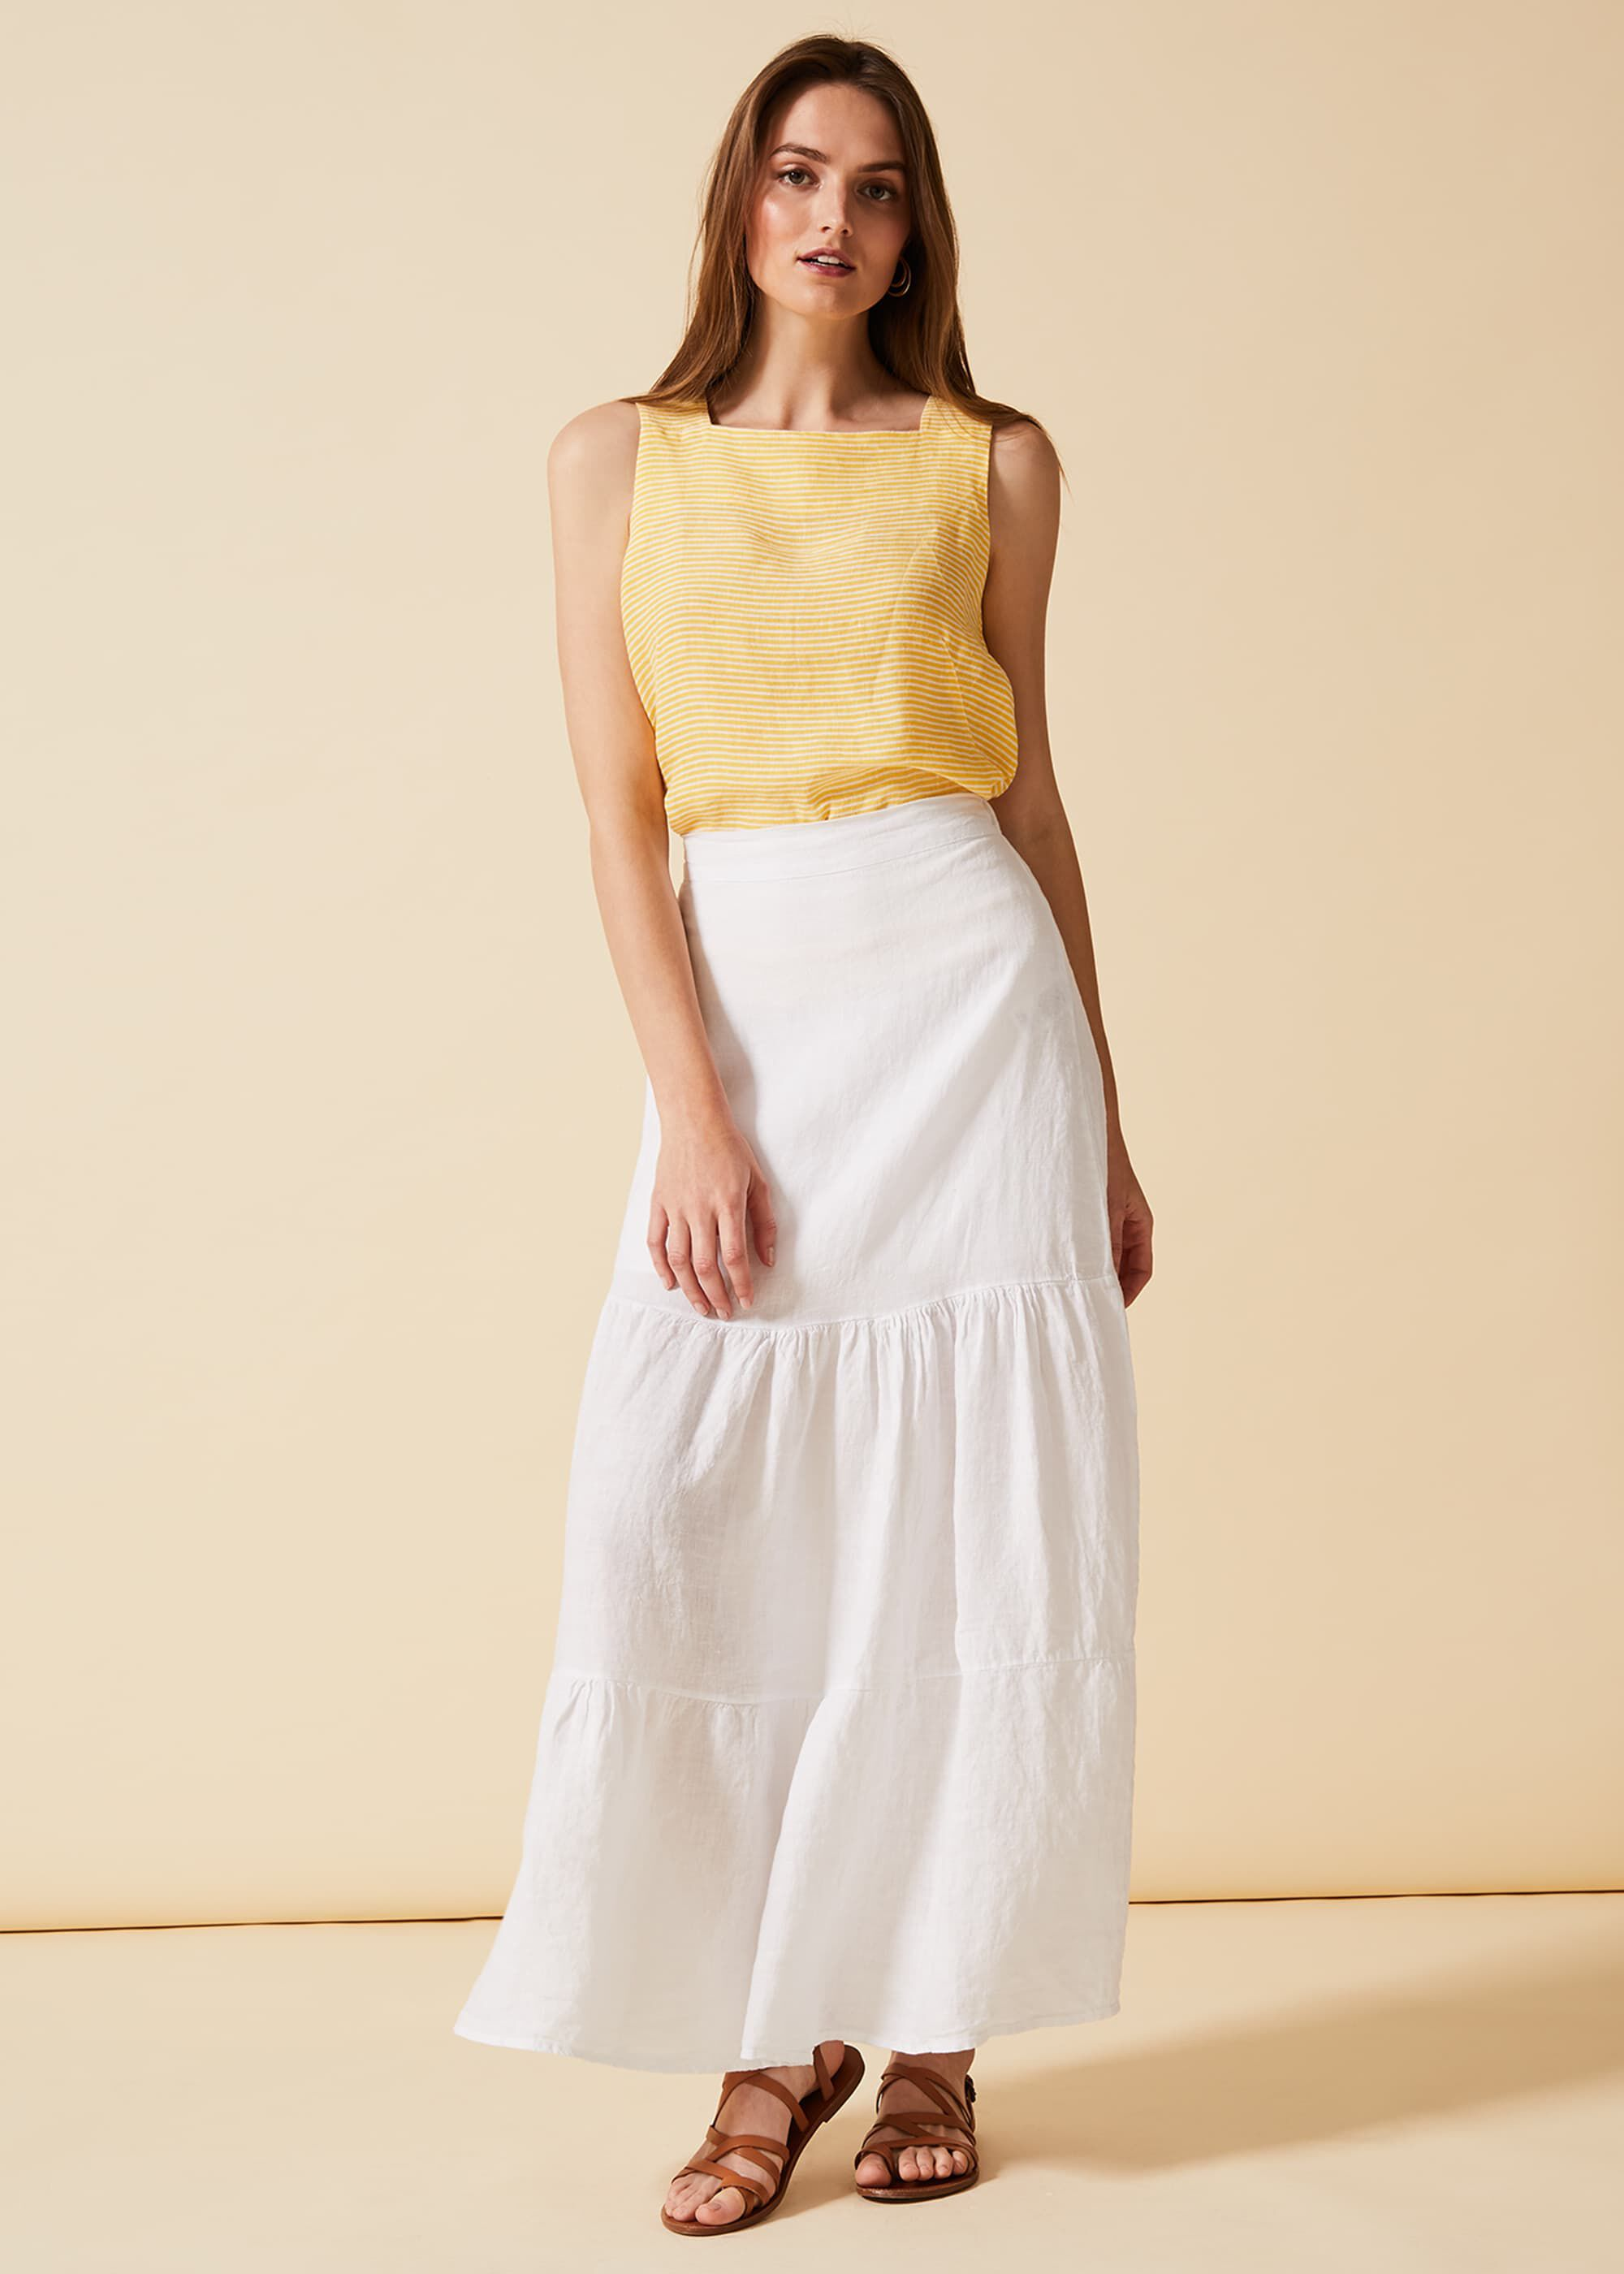 Phase Eight Arvinder Linen Skirt, White, Maxi Skirt